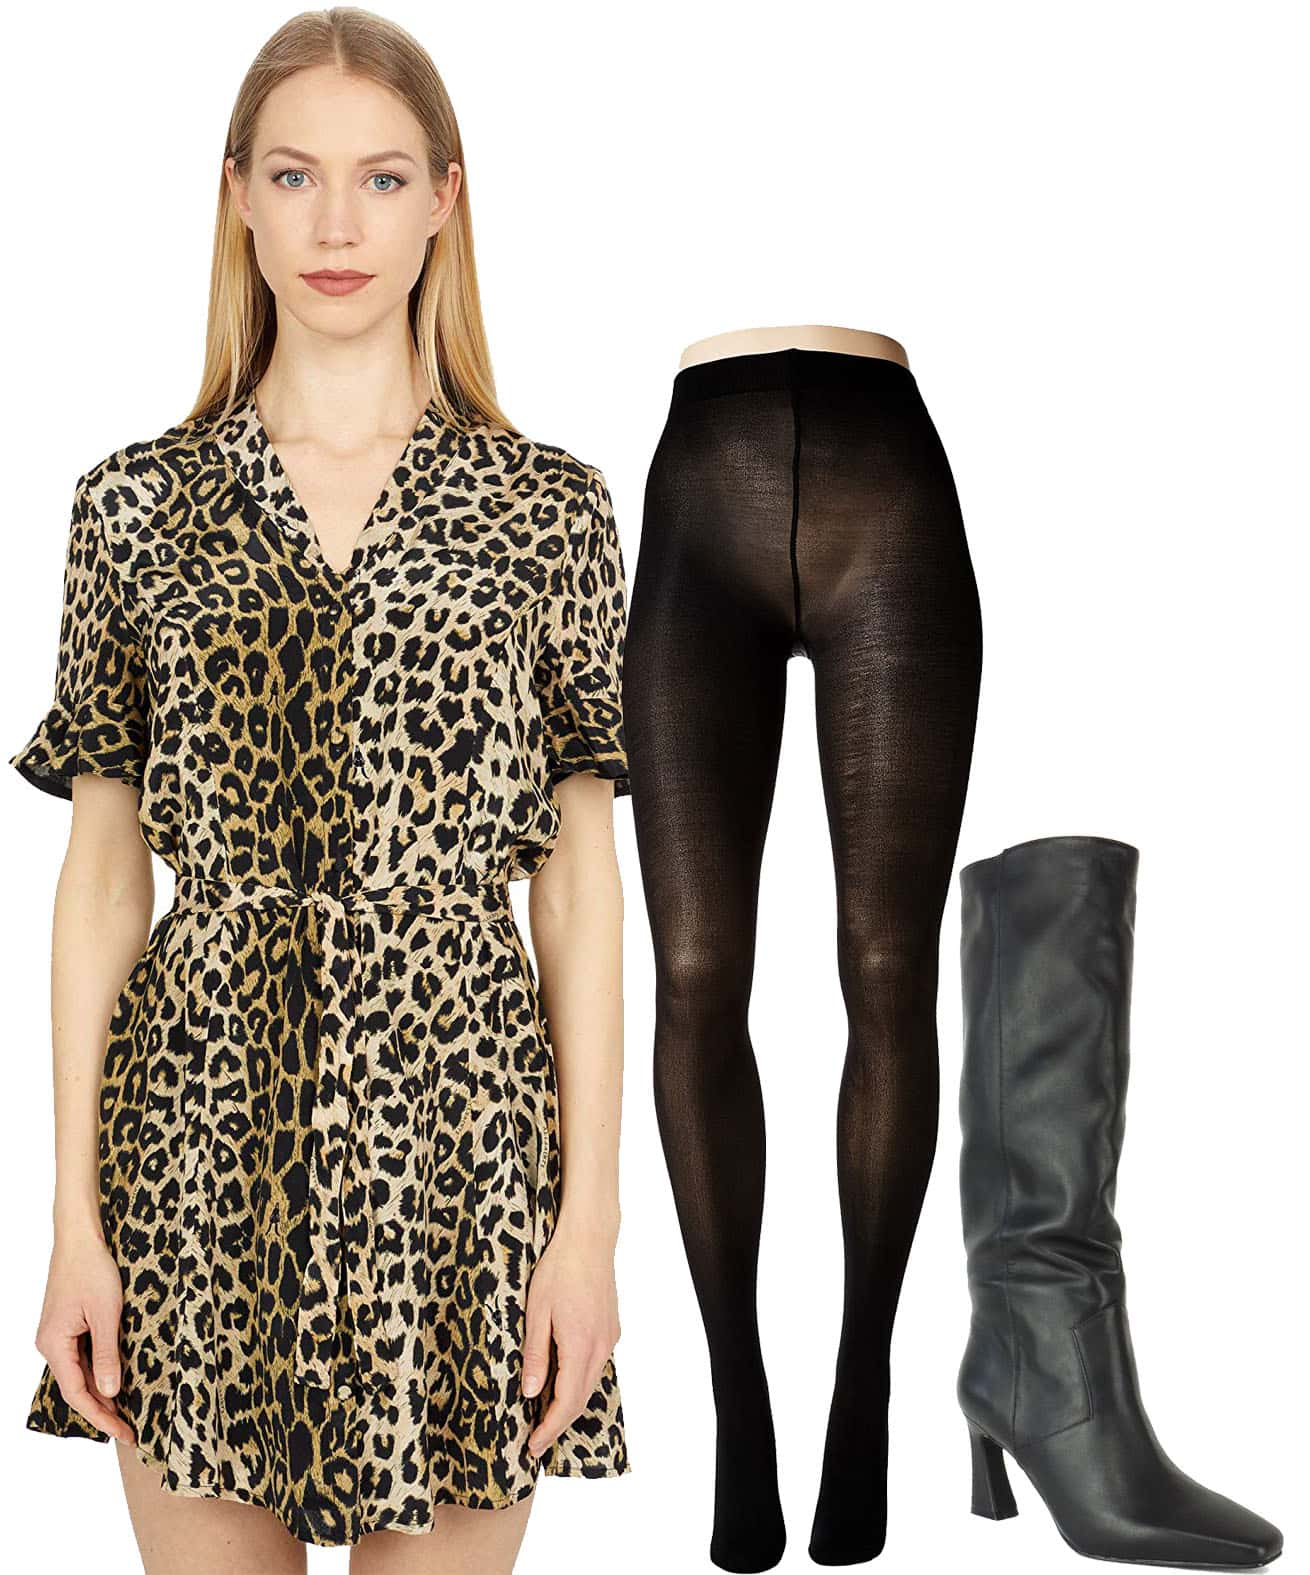 All Saints Fey Leppo Dress, Bloch Contoursoft Footed Tights, Caverley Candy Slouchy Leather Knee Boots